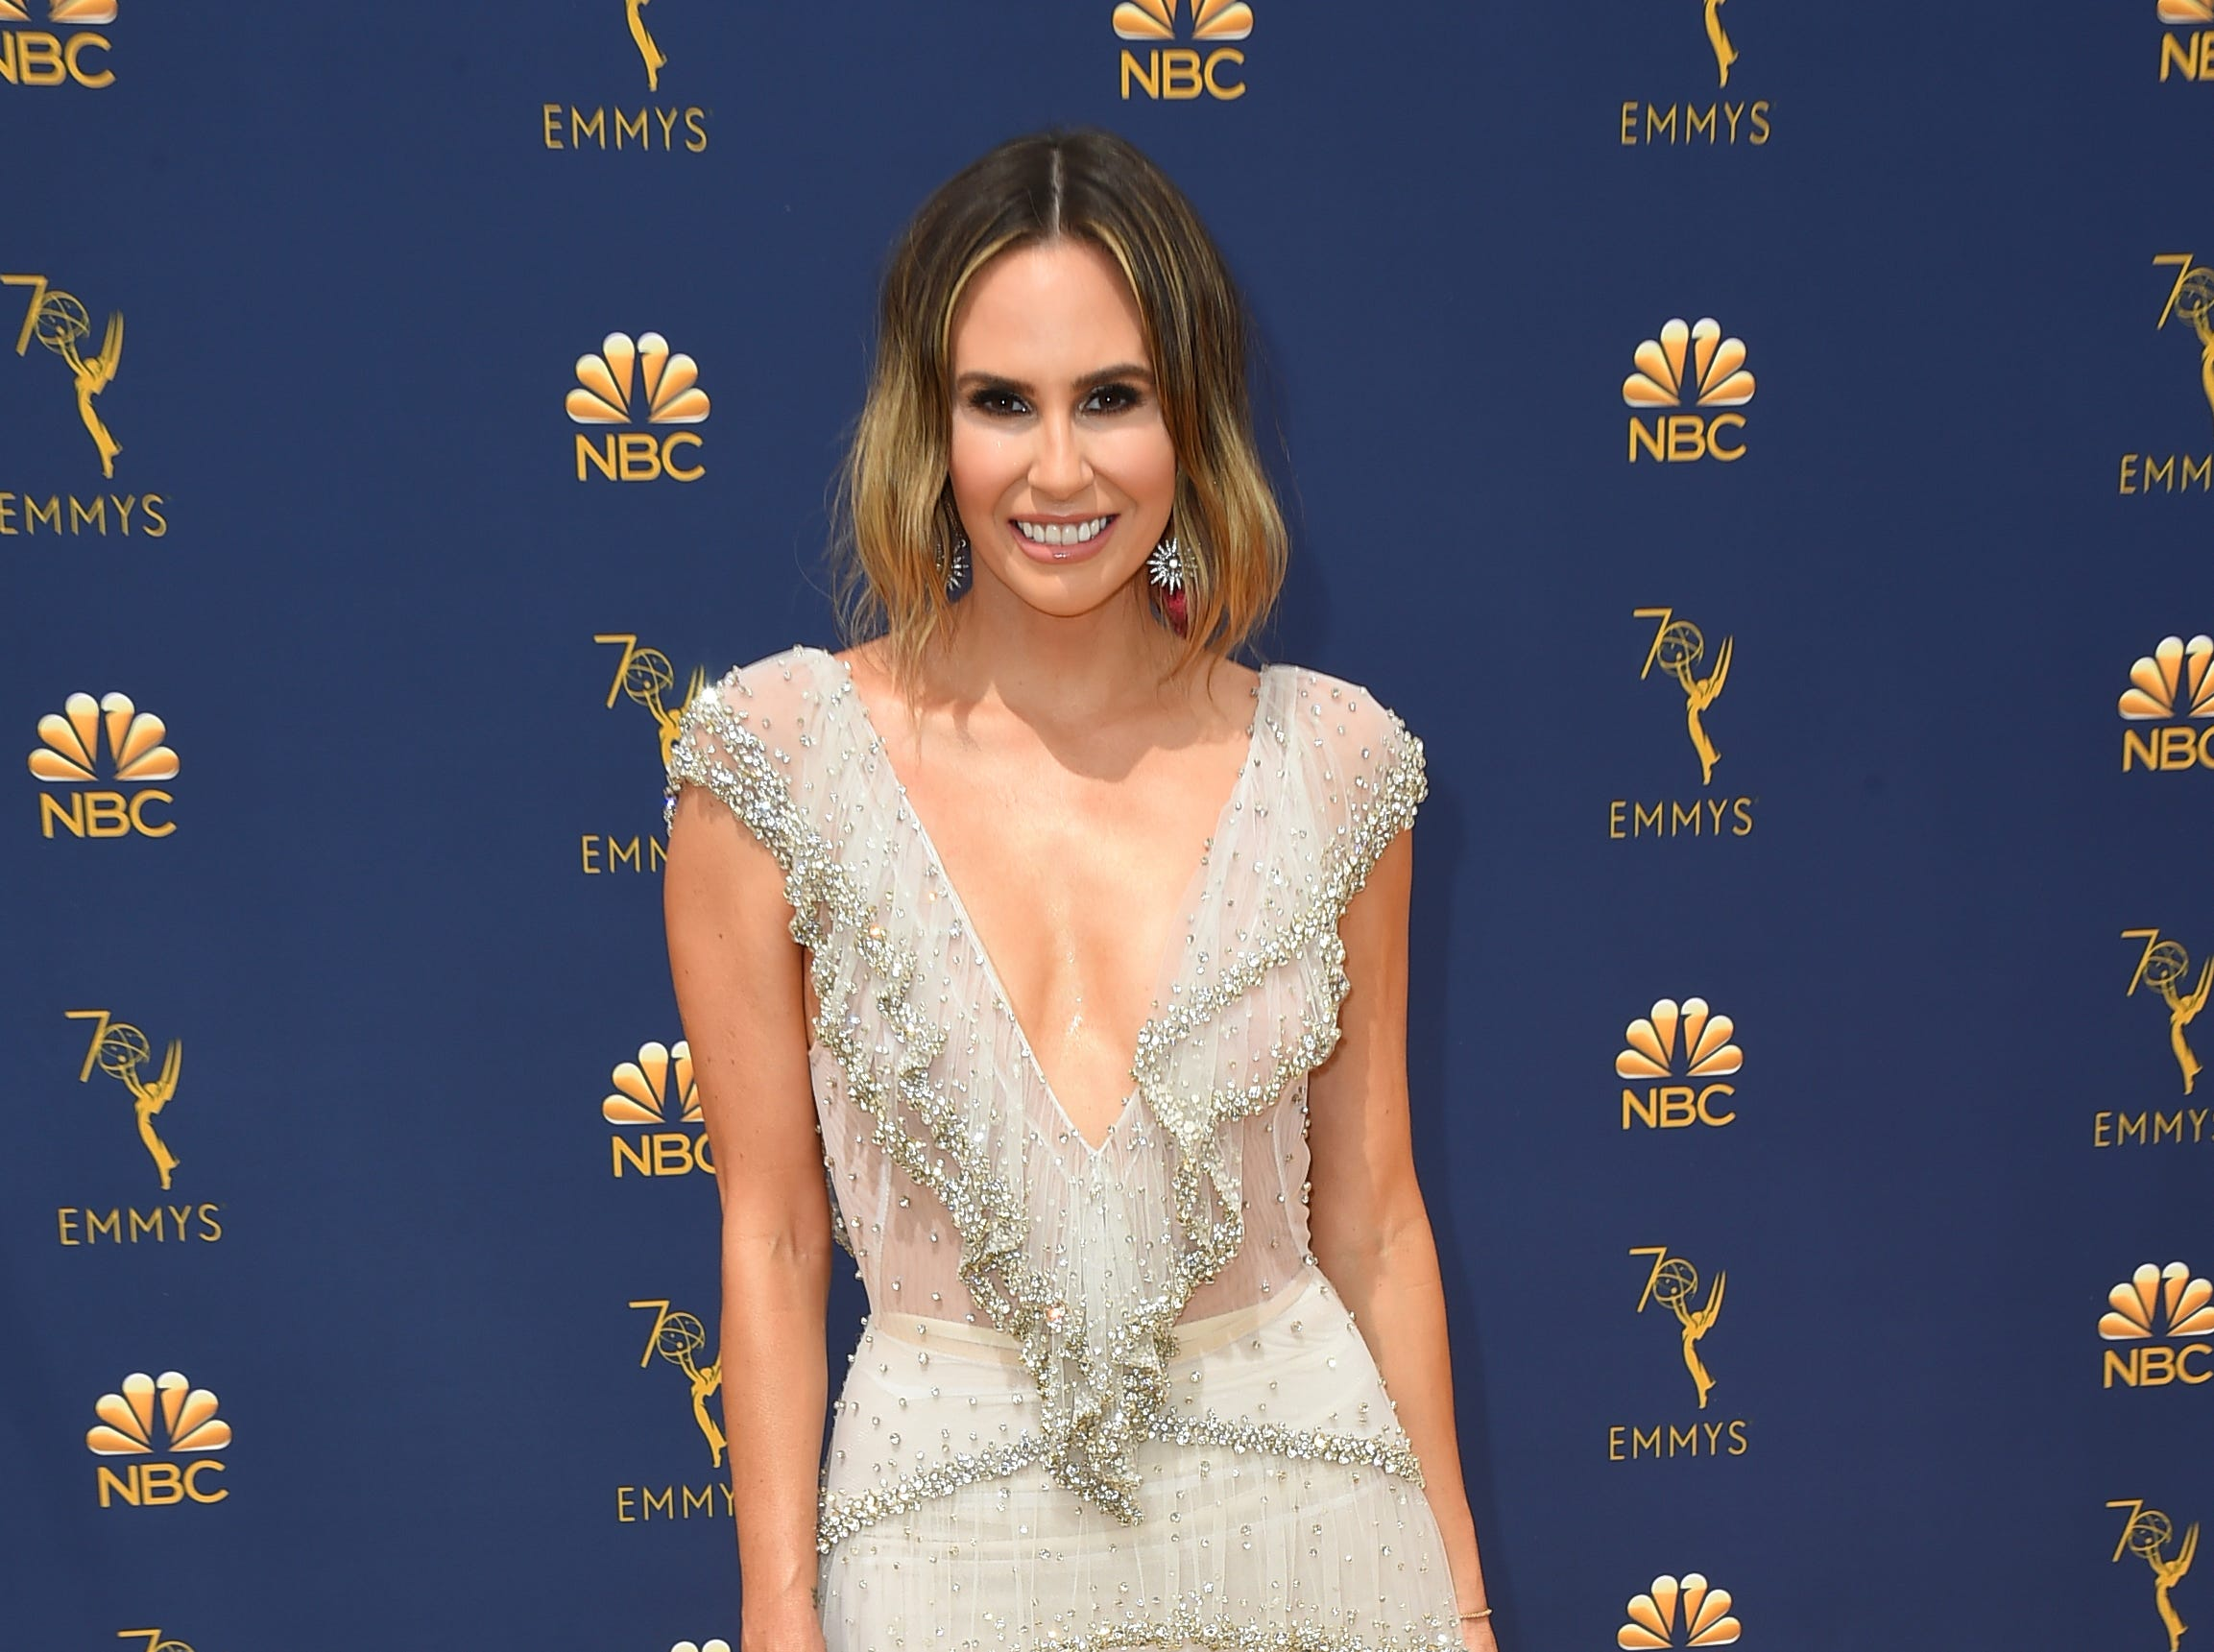 Keltie Knight arrives at the 70th Primetime Emmy Awards on Monday, Sept. 17, 2018, at the Microsoft Theater in Los Angeles.